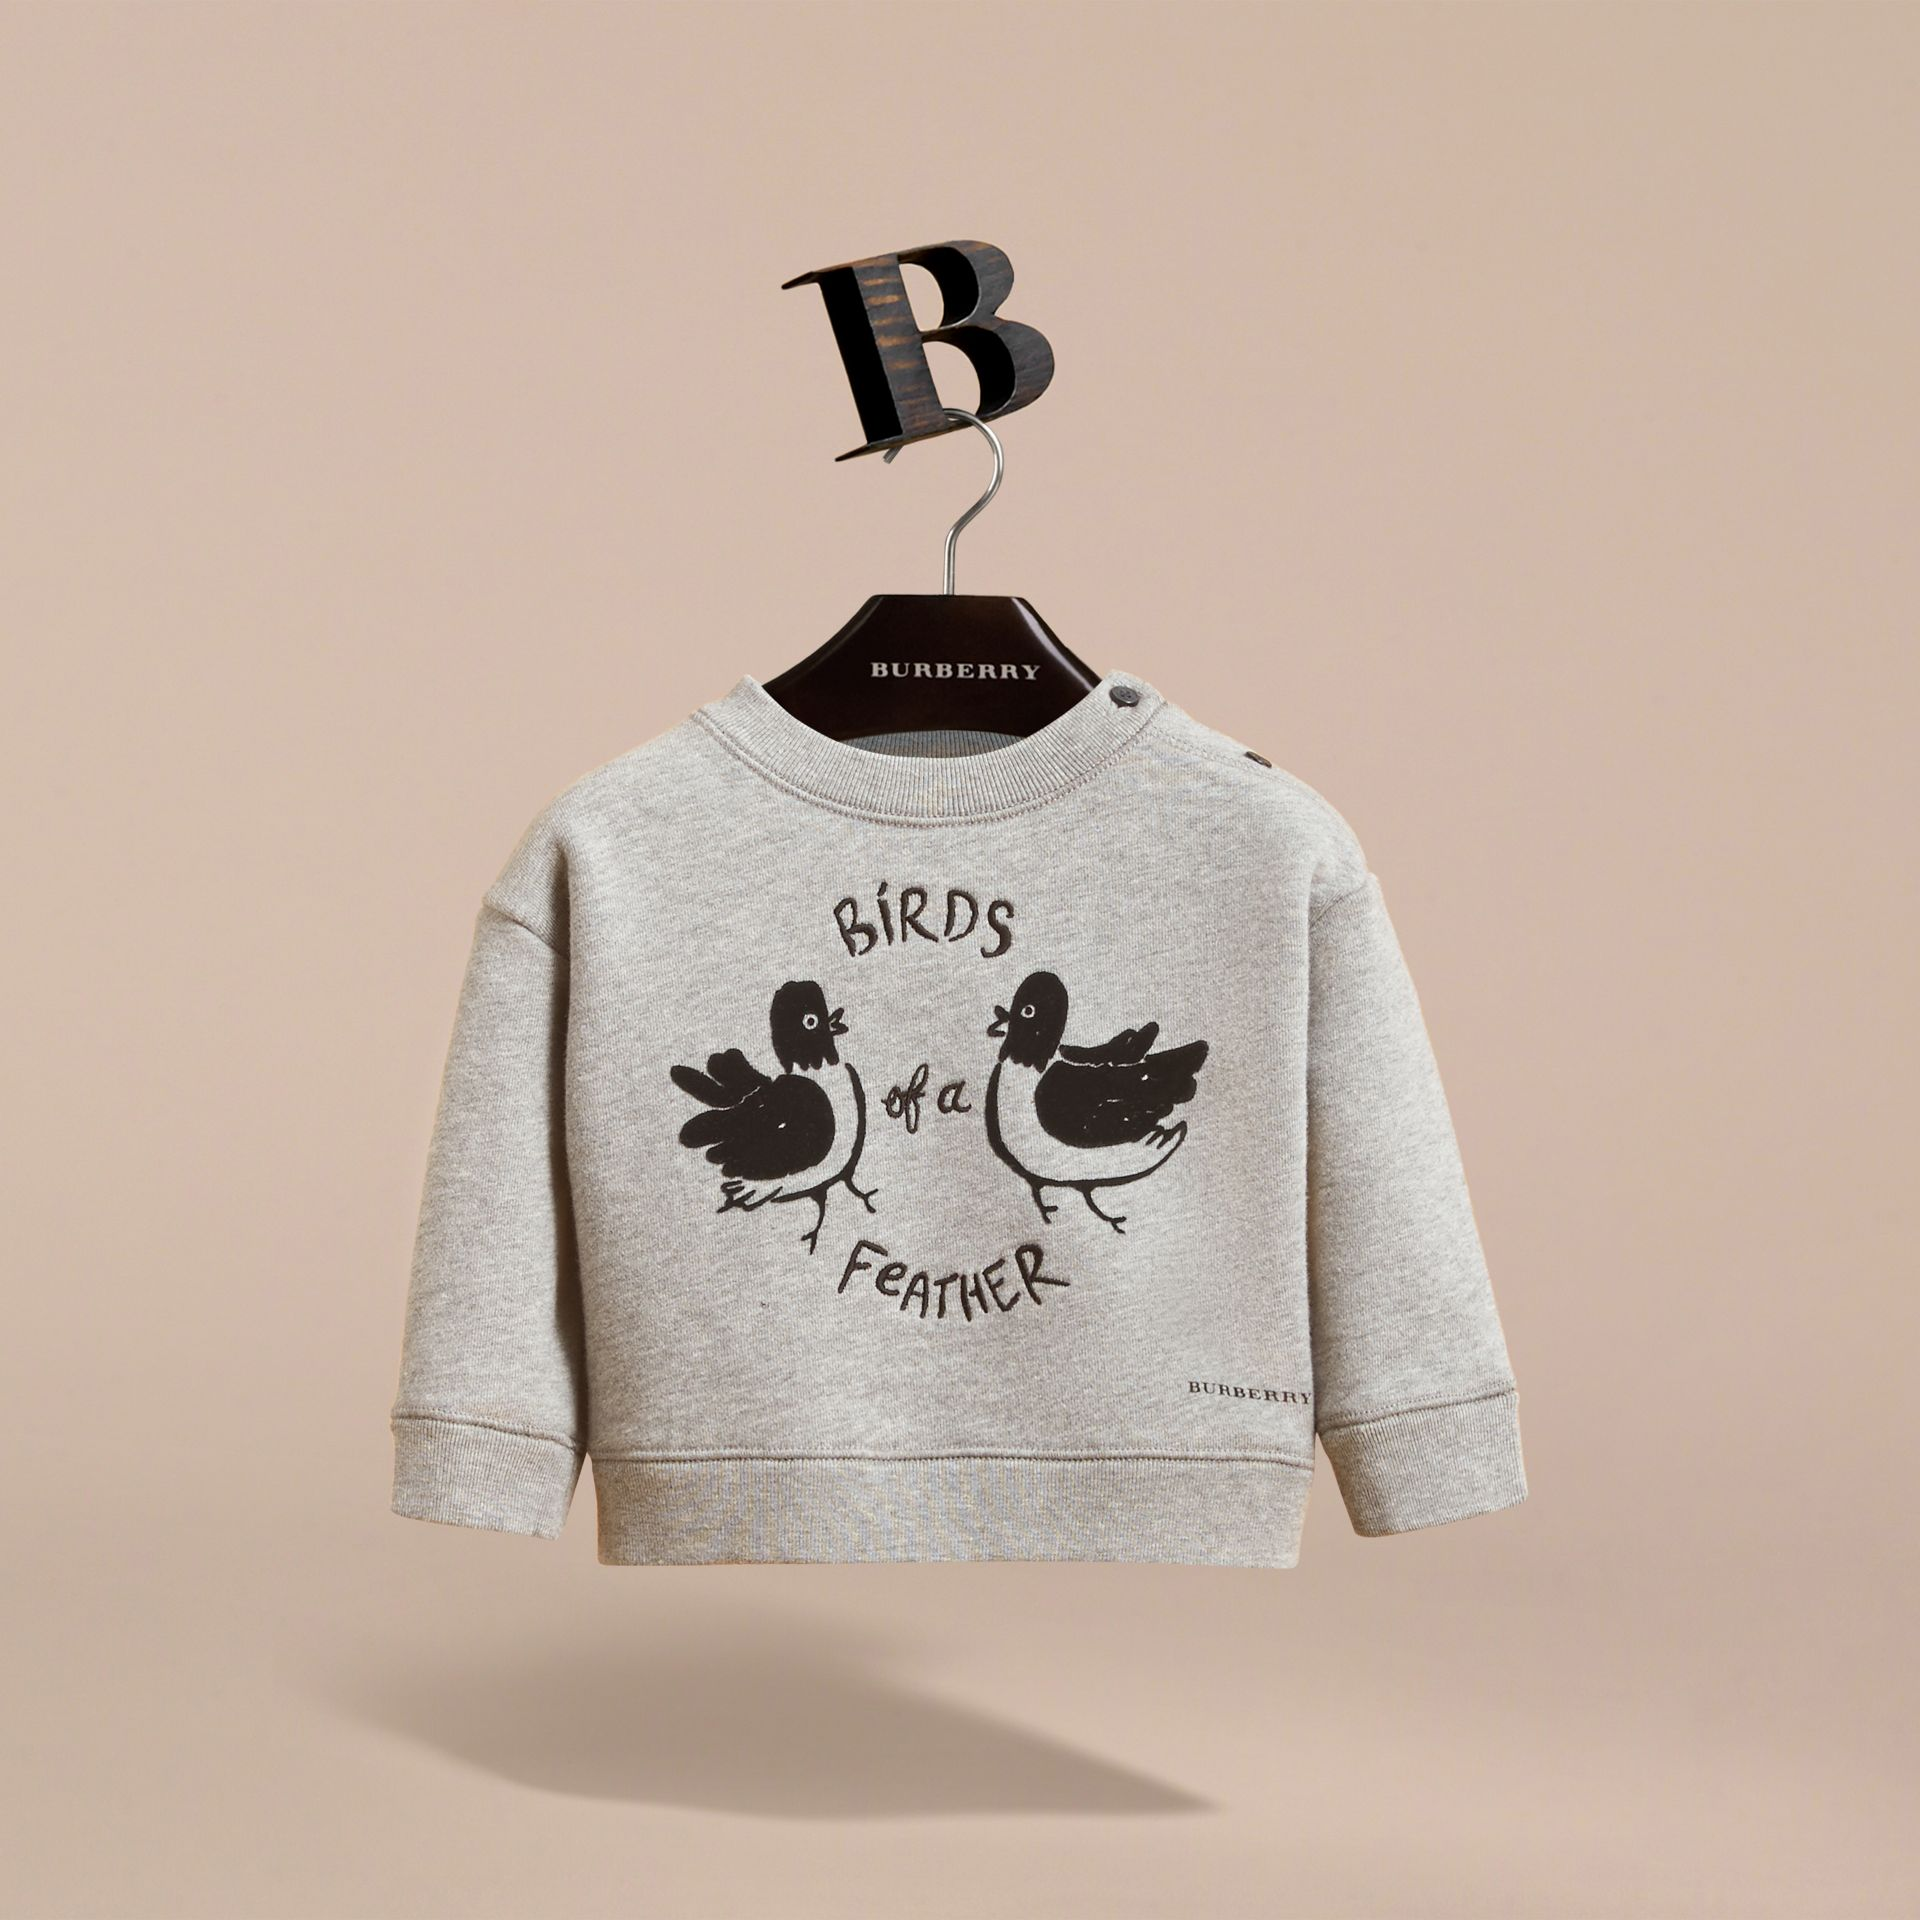 Birds of a Feather Motif Cotton Sweatshirt in Grey Melange | Burberry Hong Kong - gallery image 3